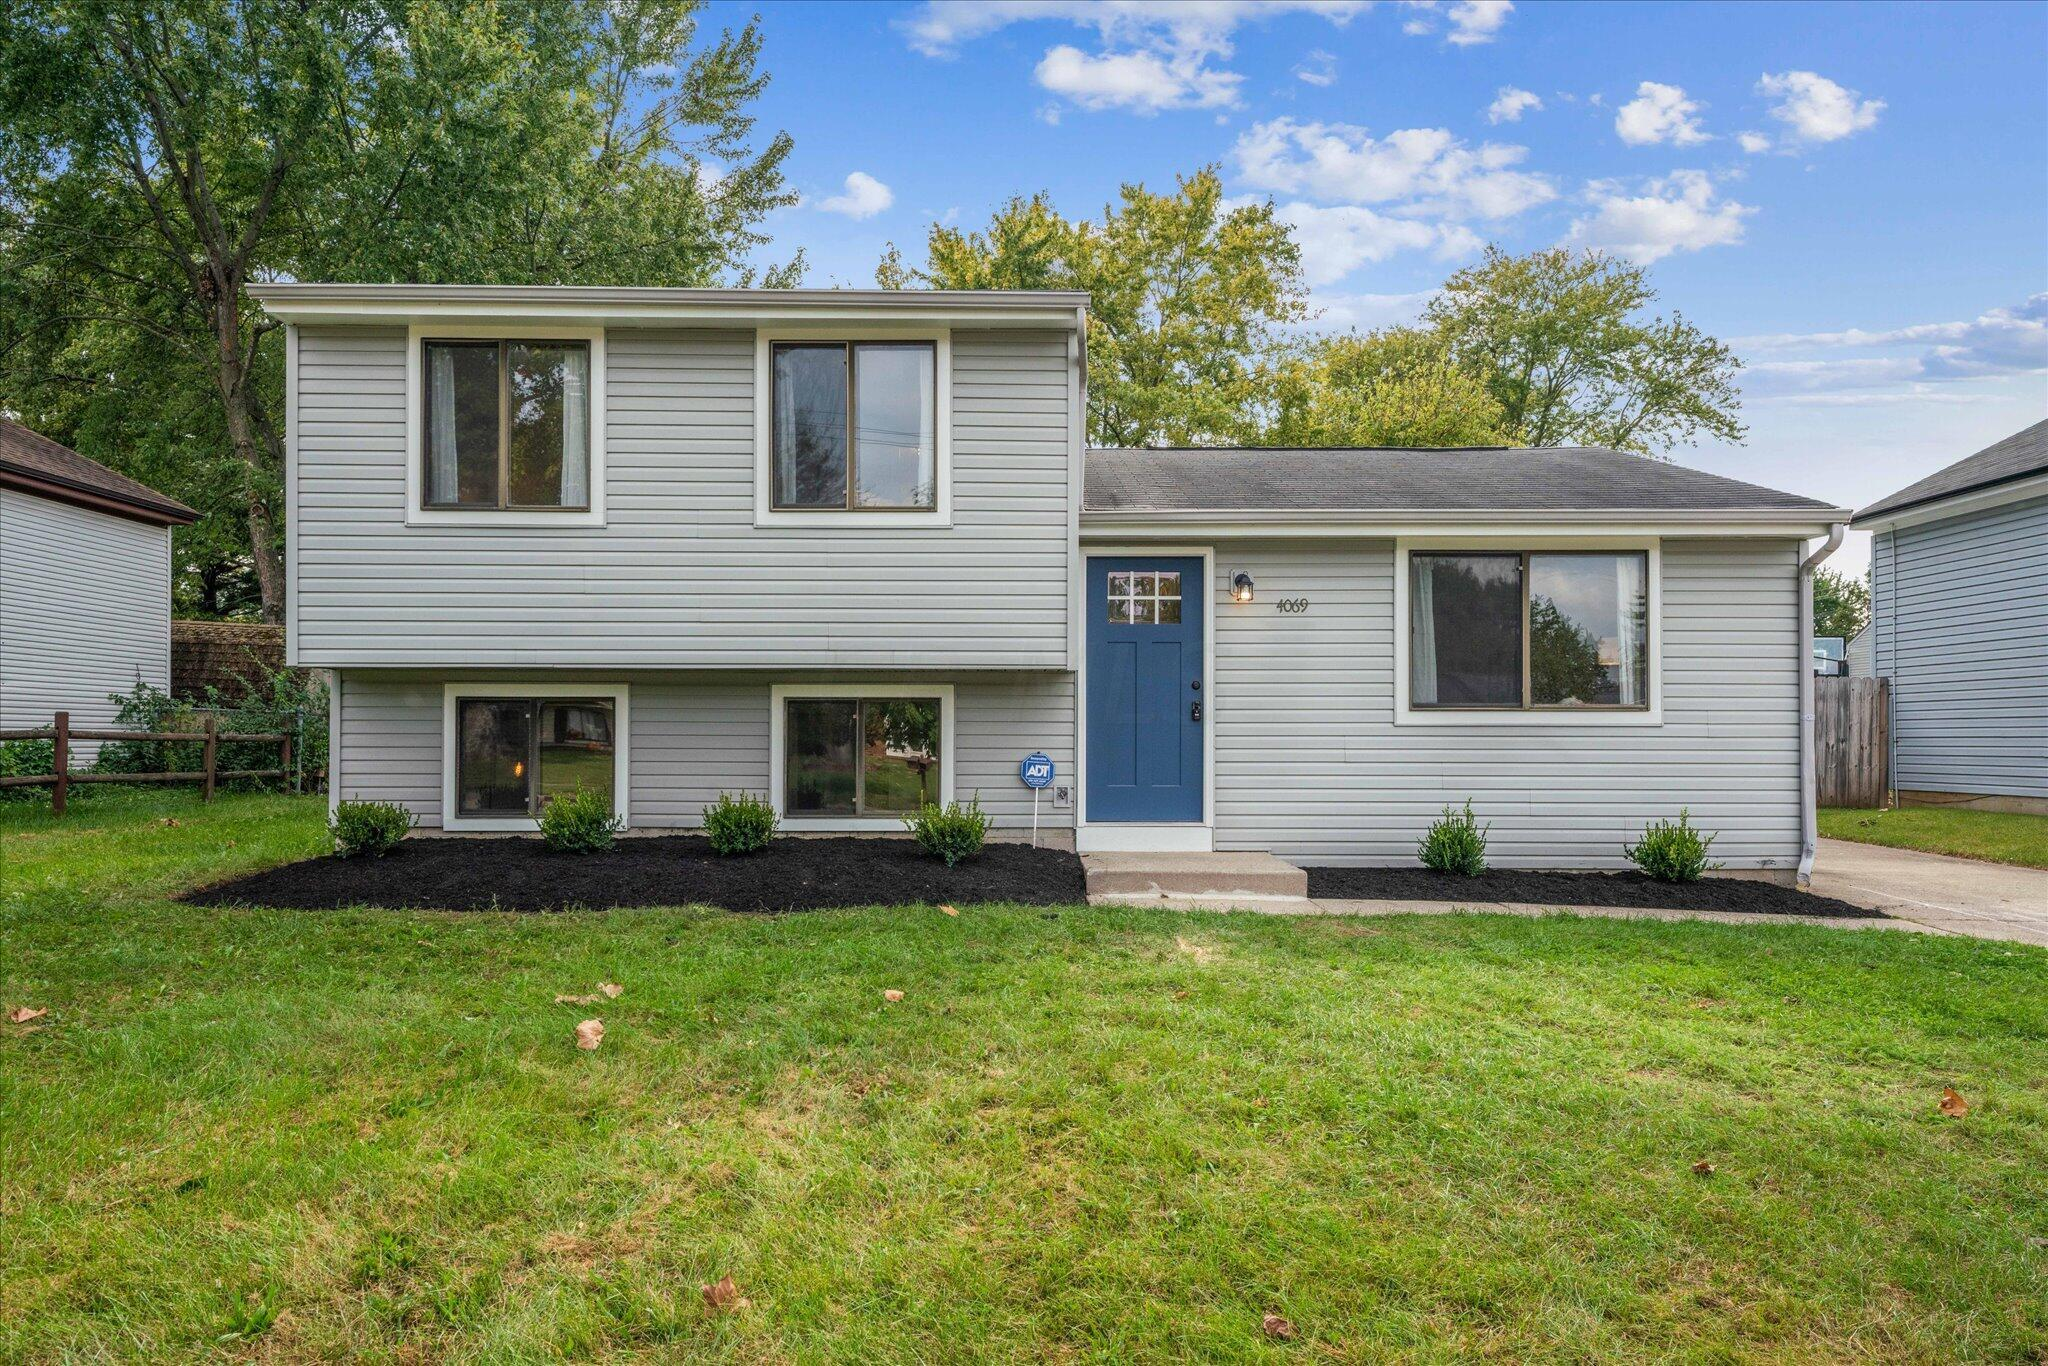 Photo of 4069 Yellowstone Drive, Groveport, OH 43125